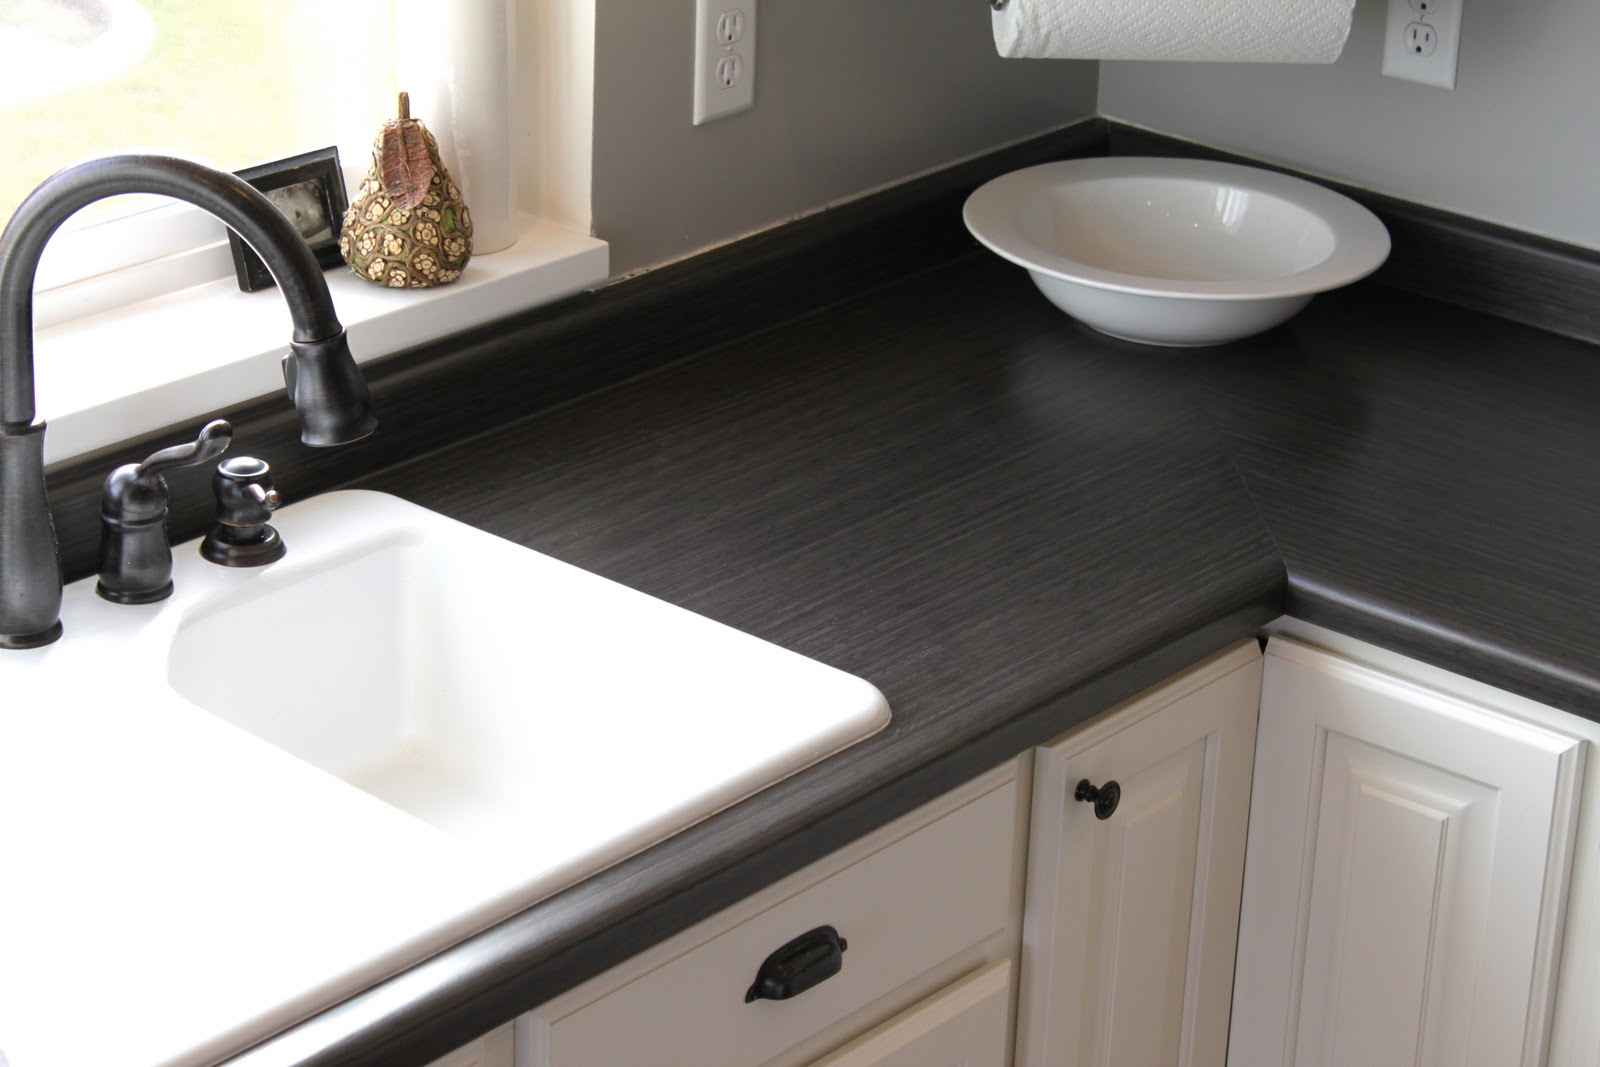 Discount Granite Countertops Kitchens : Cheap countertop ideas feel the home